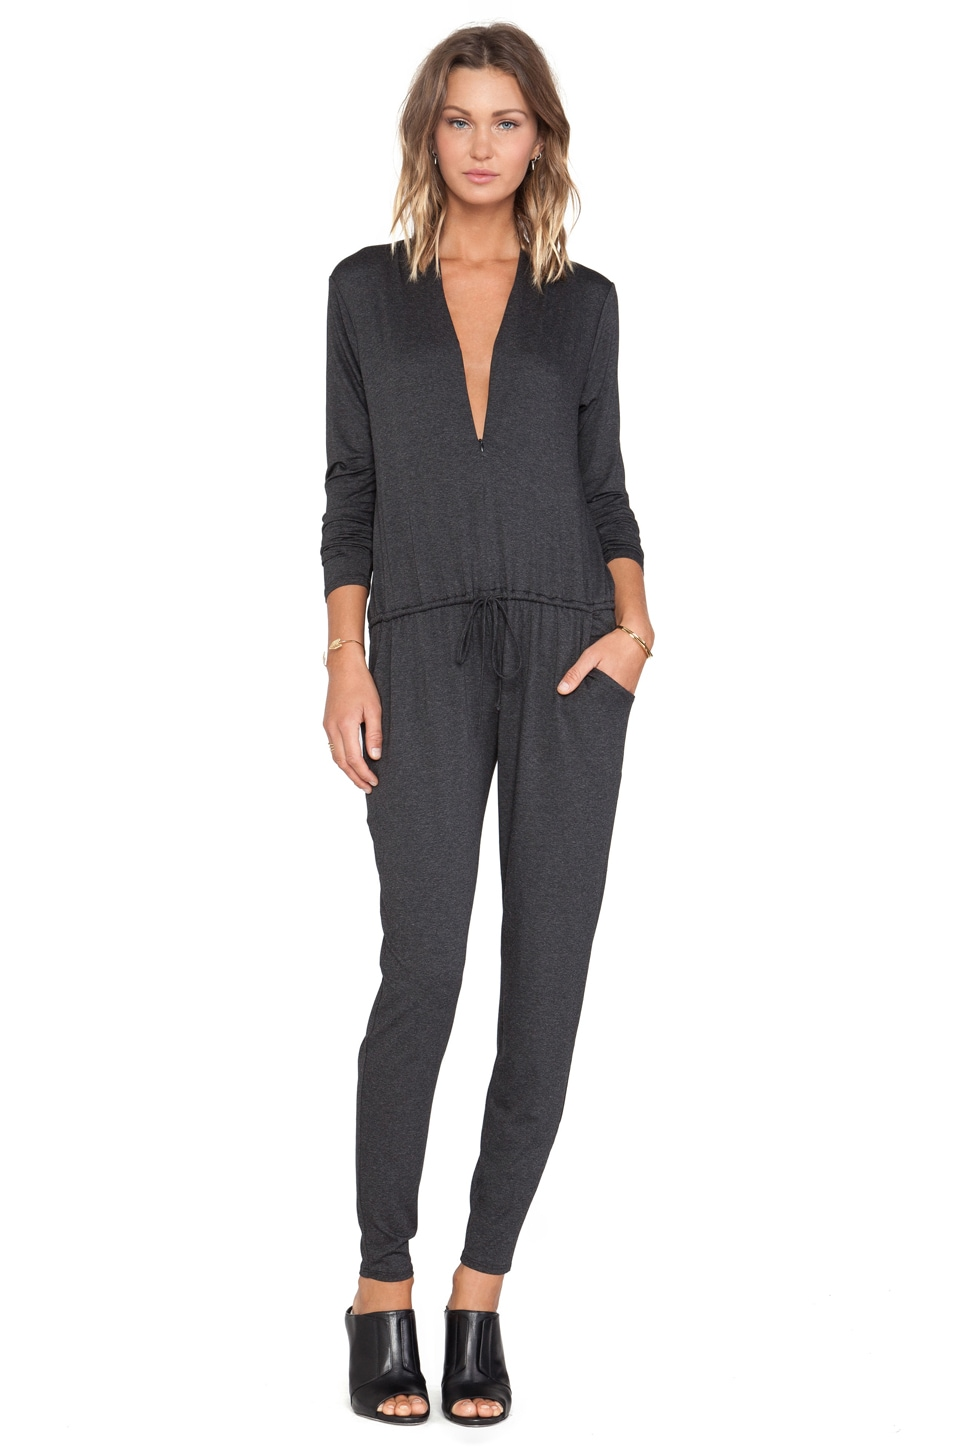 Feel the Piece V-Neck Jumpsuit in Charcoal